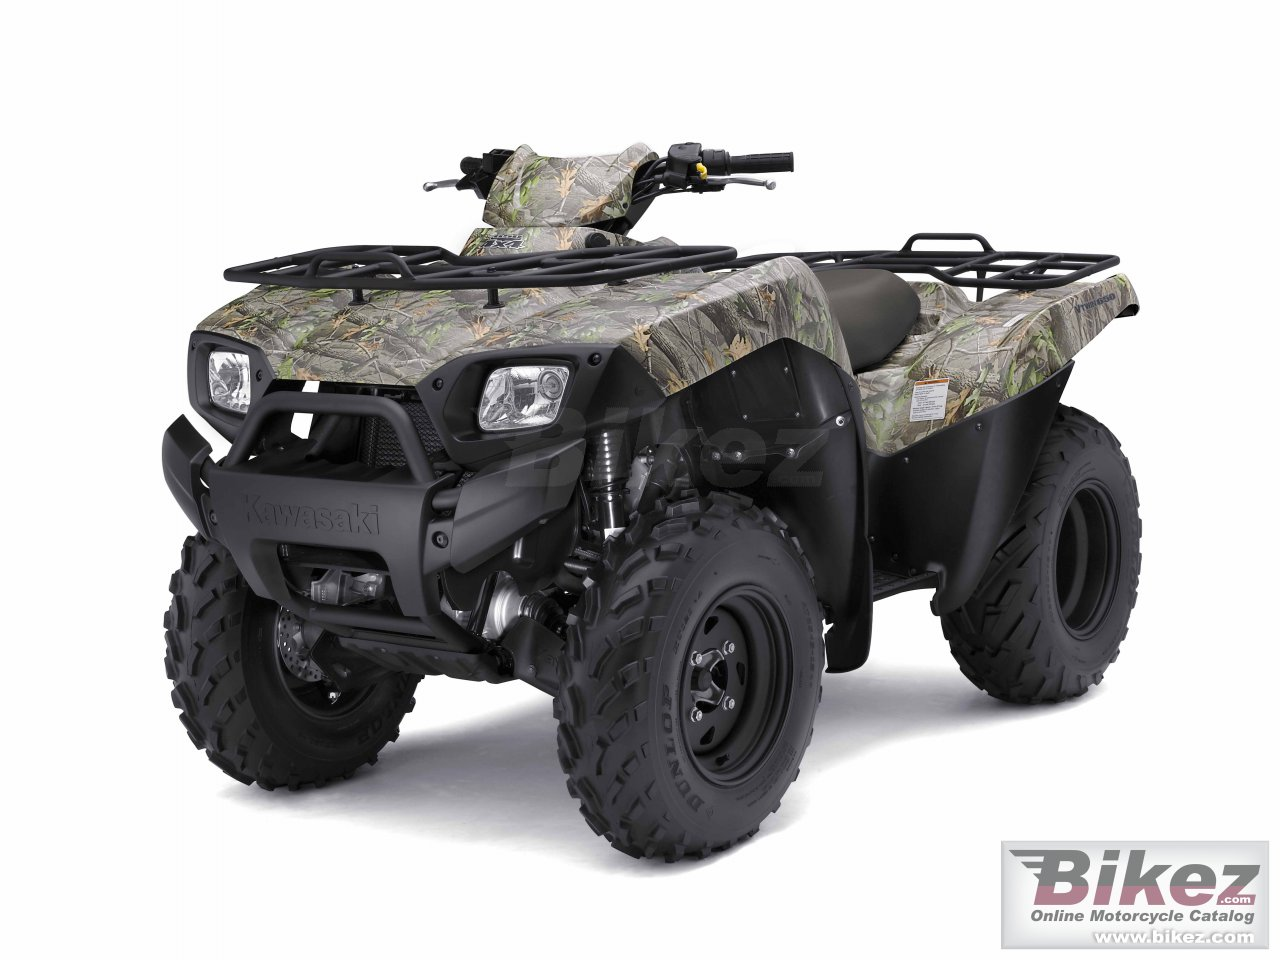 Big Kawasaki brute force 650 4x4 camo picture and wallpaper from Bikez.com